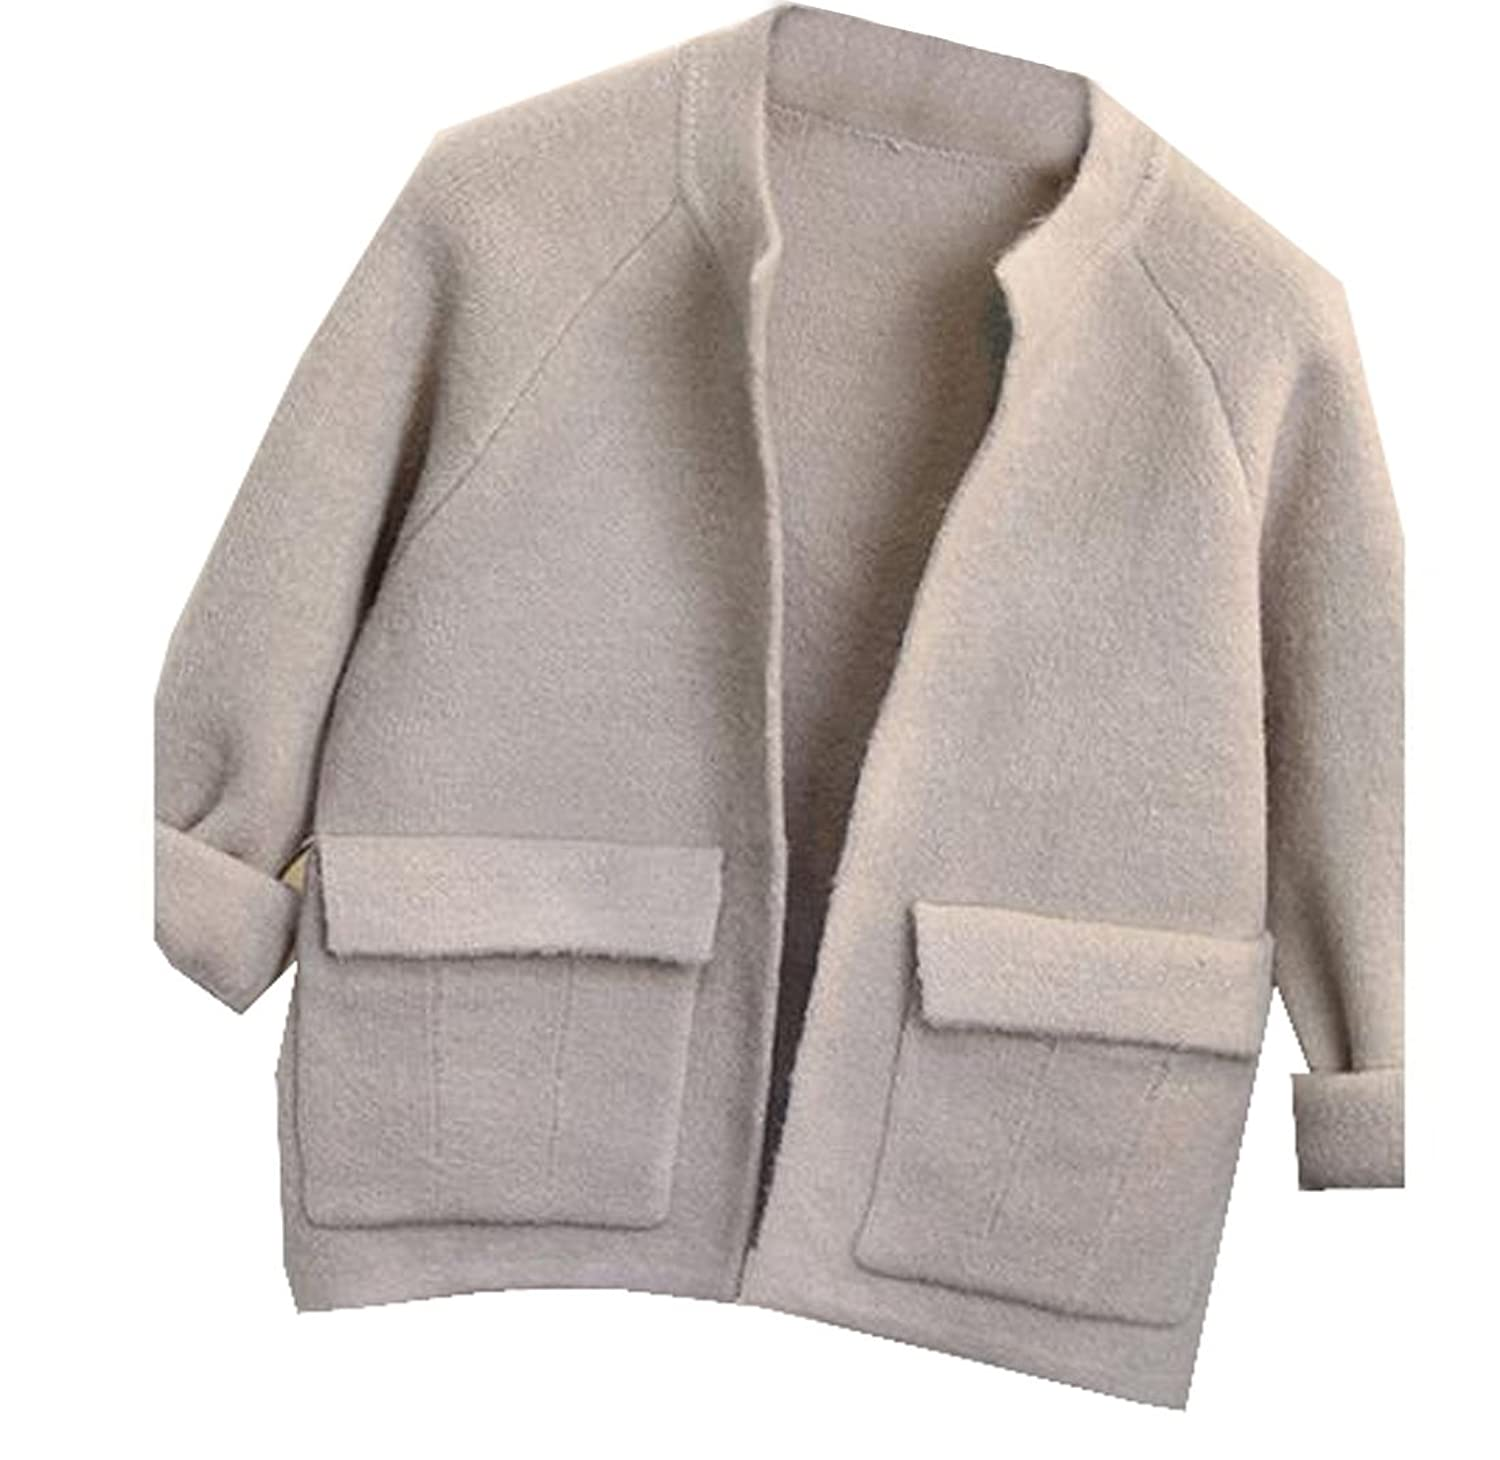 NQ Women's Short Long Sleeve Chic Open Front Cardigan Outerwear